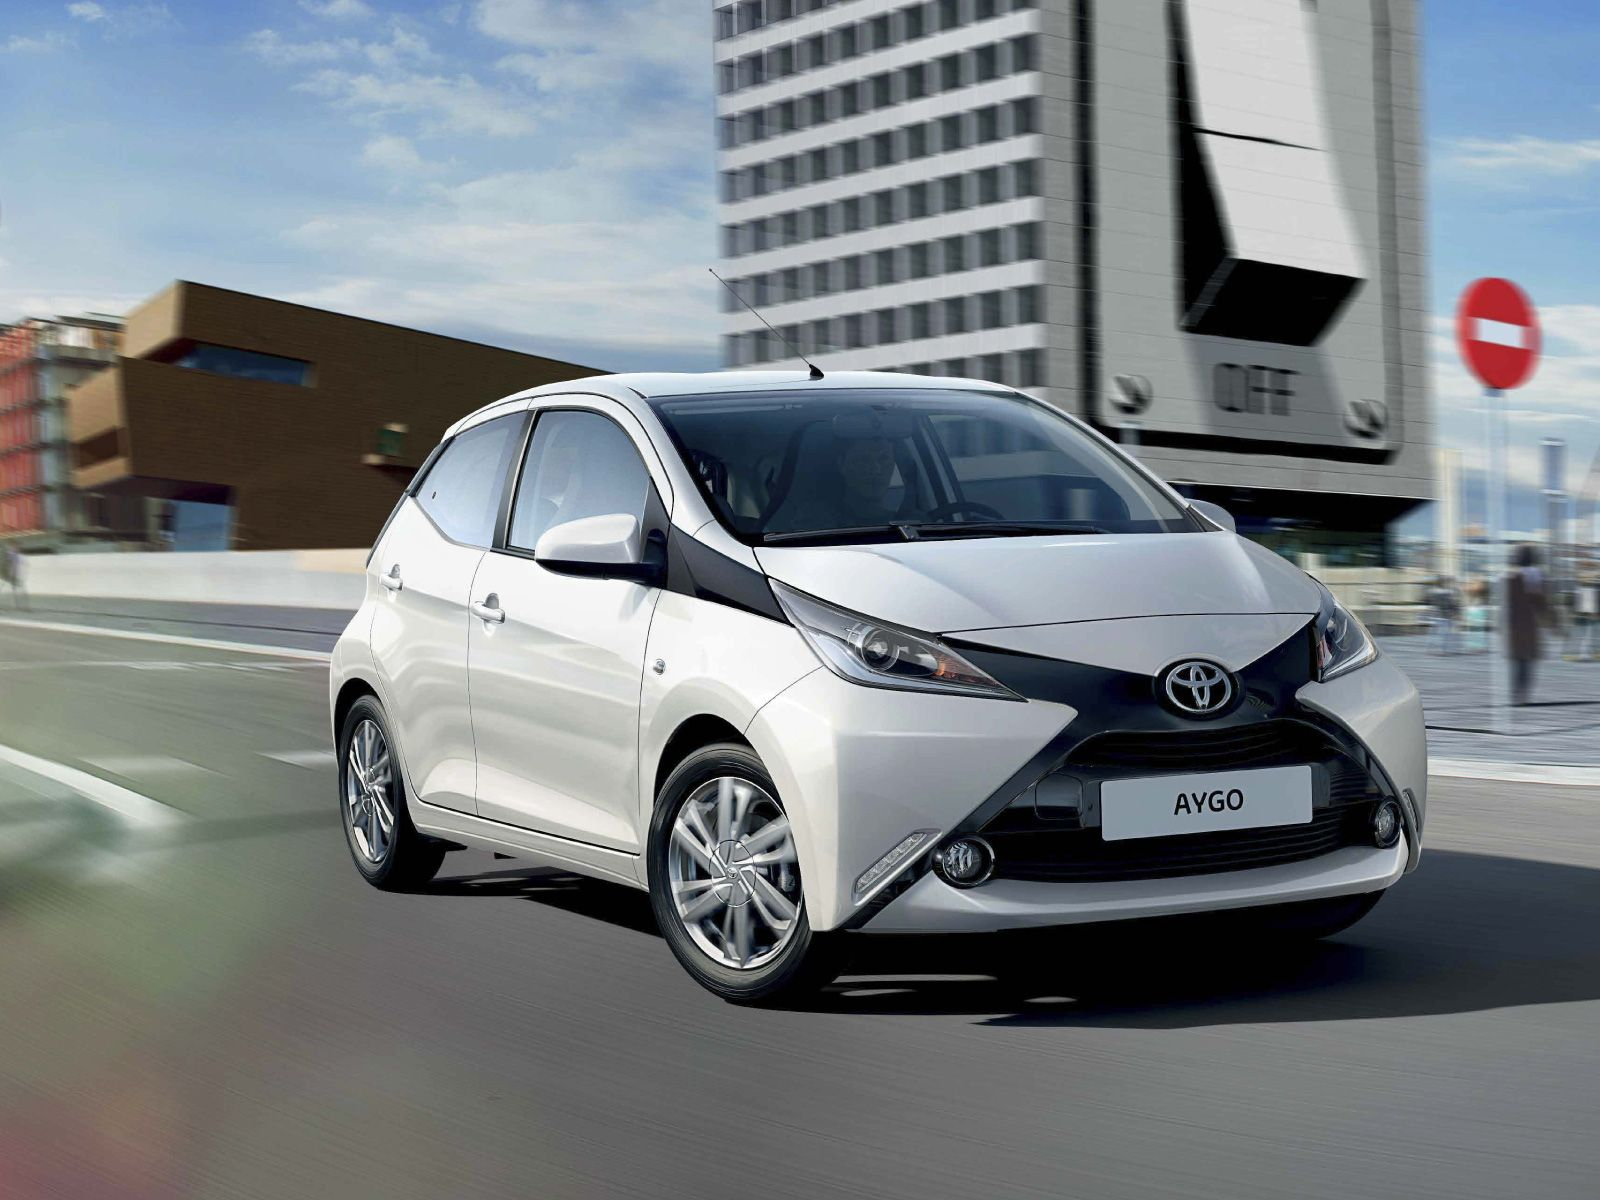 Toyota Aygo Fun City Car Toyota Aygo Best Small Cars Small Cars